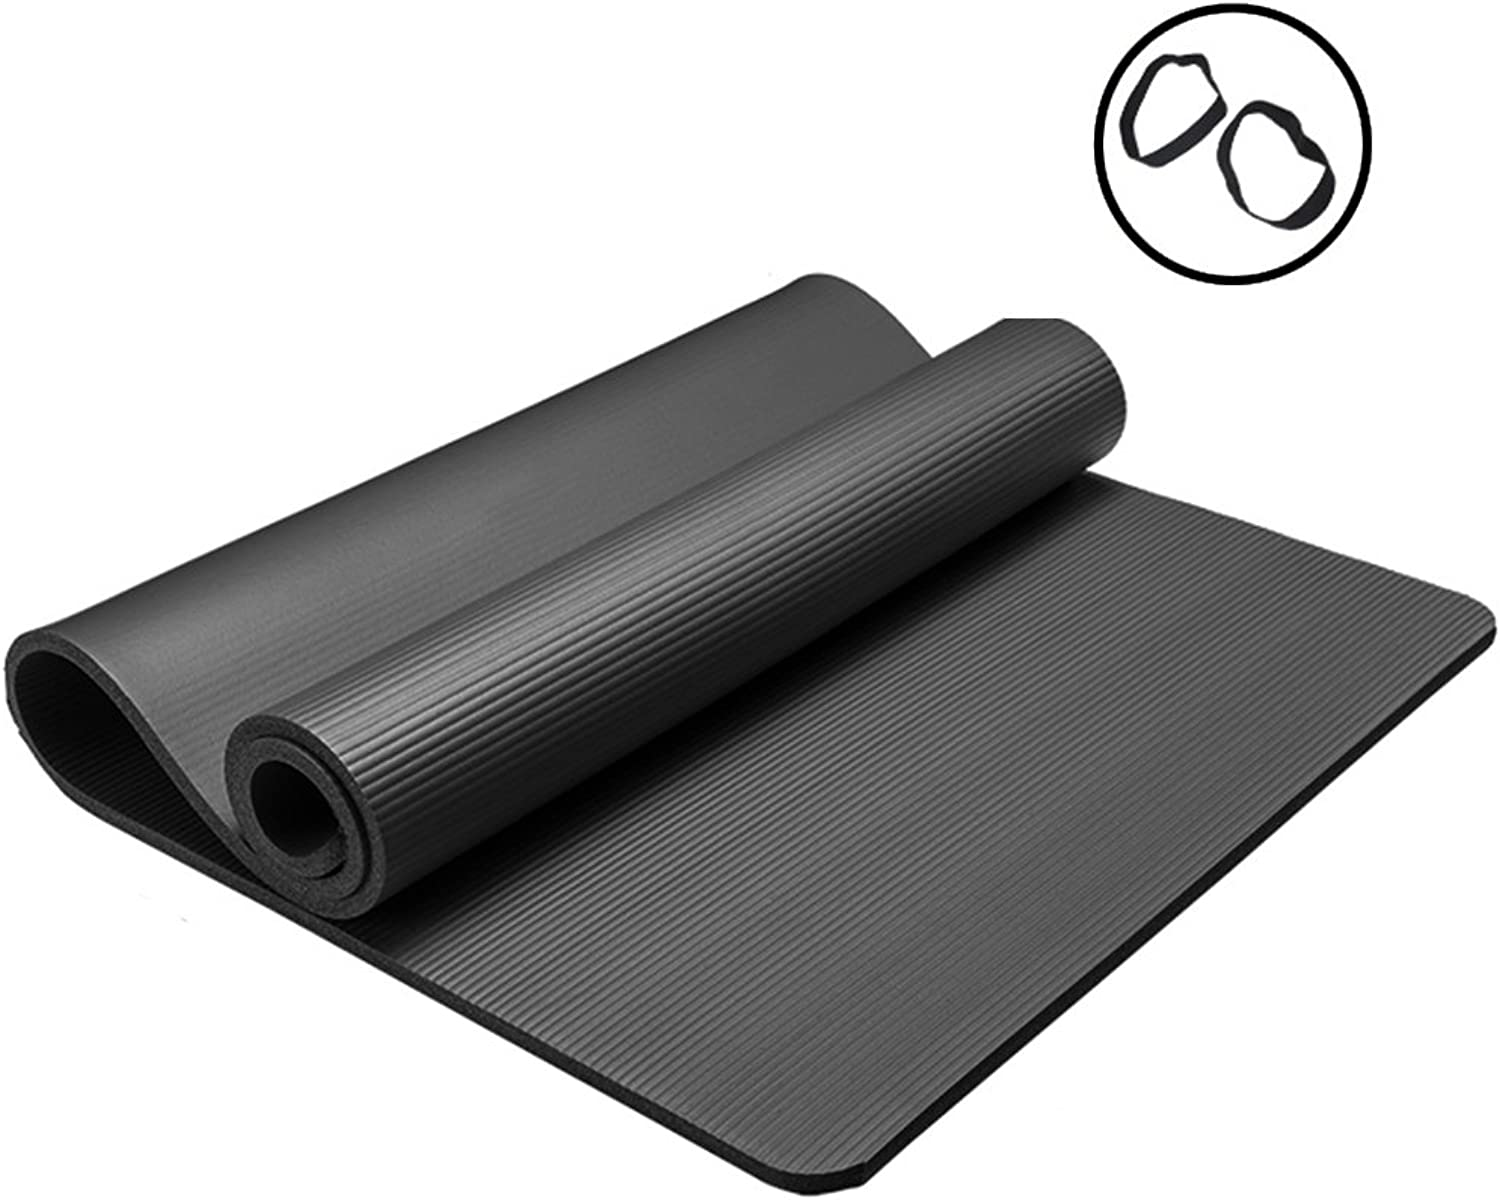 Nbr Rubber Yoga mat Thickening Fitness Camping Dance mat Anti-Slip 31.5  72.8  0.4in (color   Black, Size   80  185  1cm)